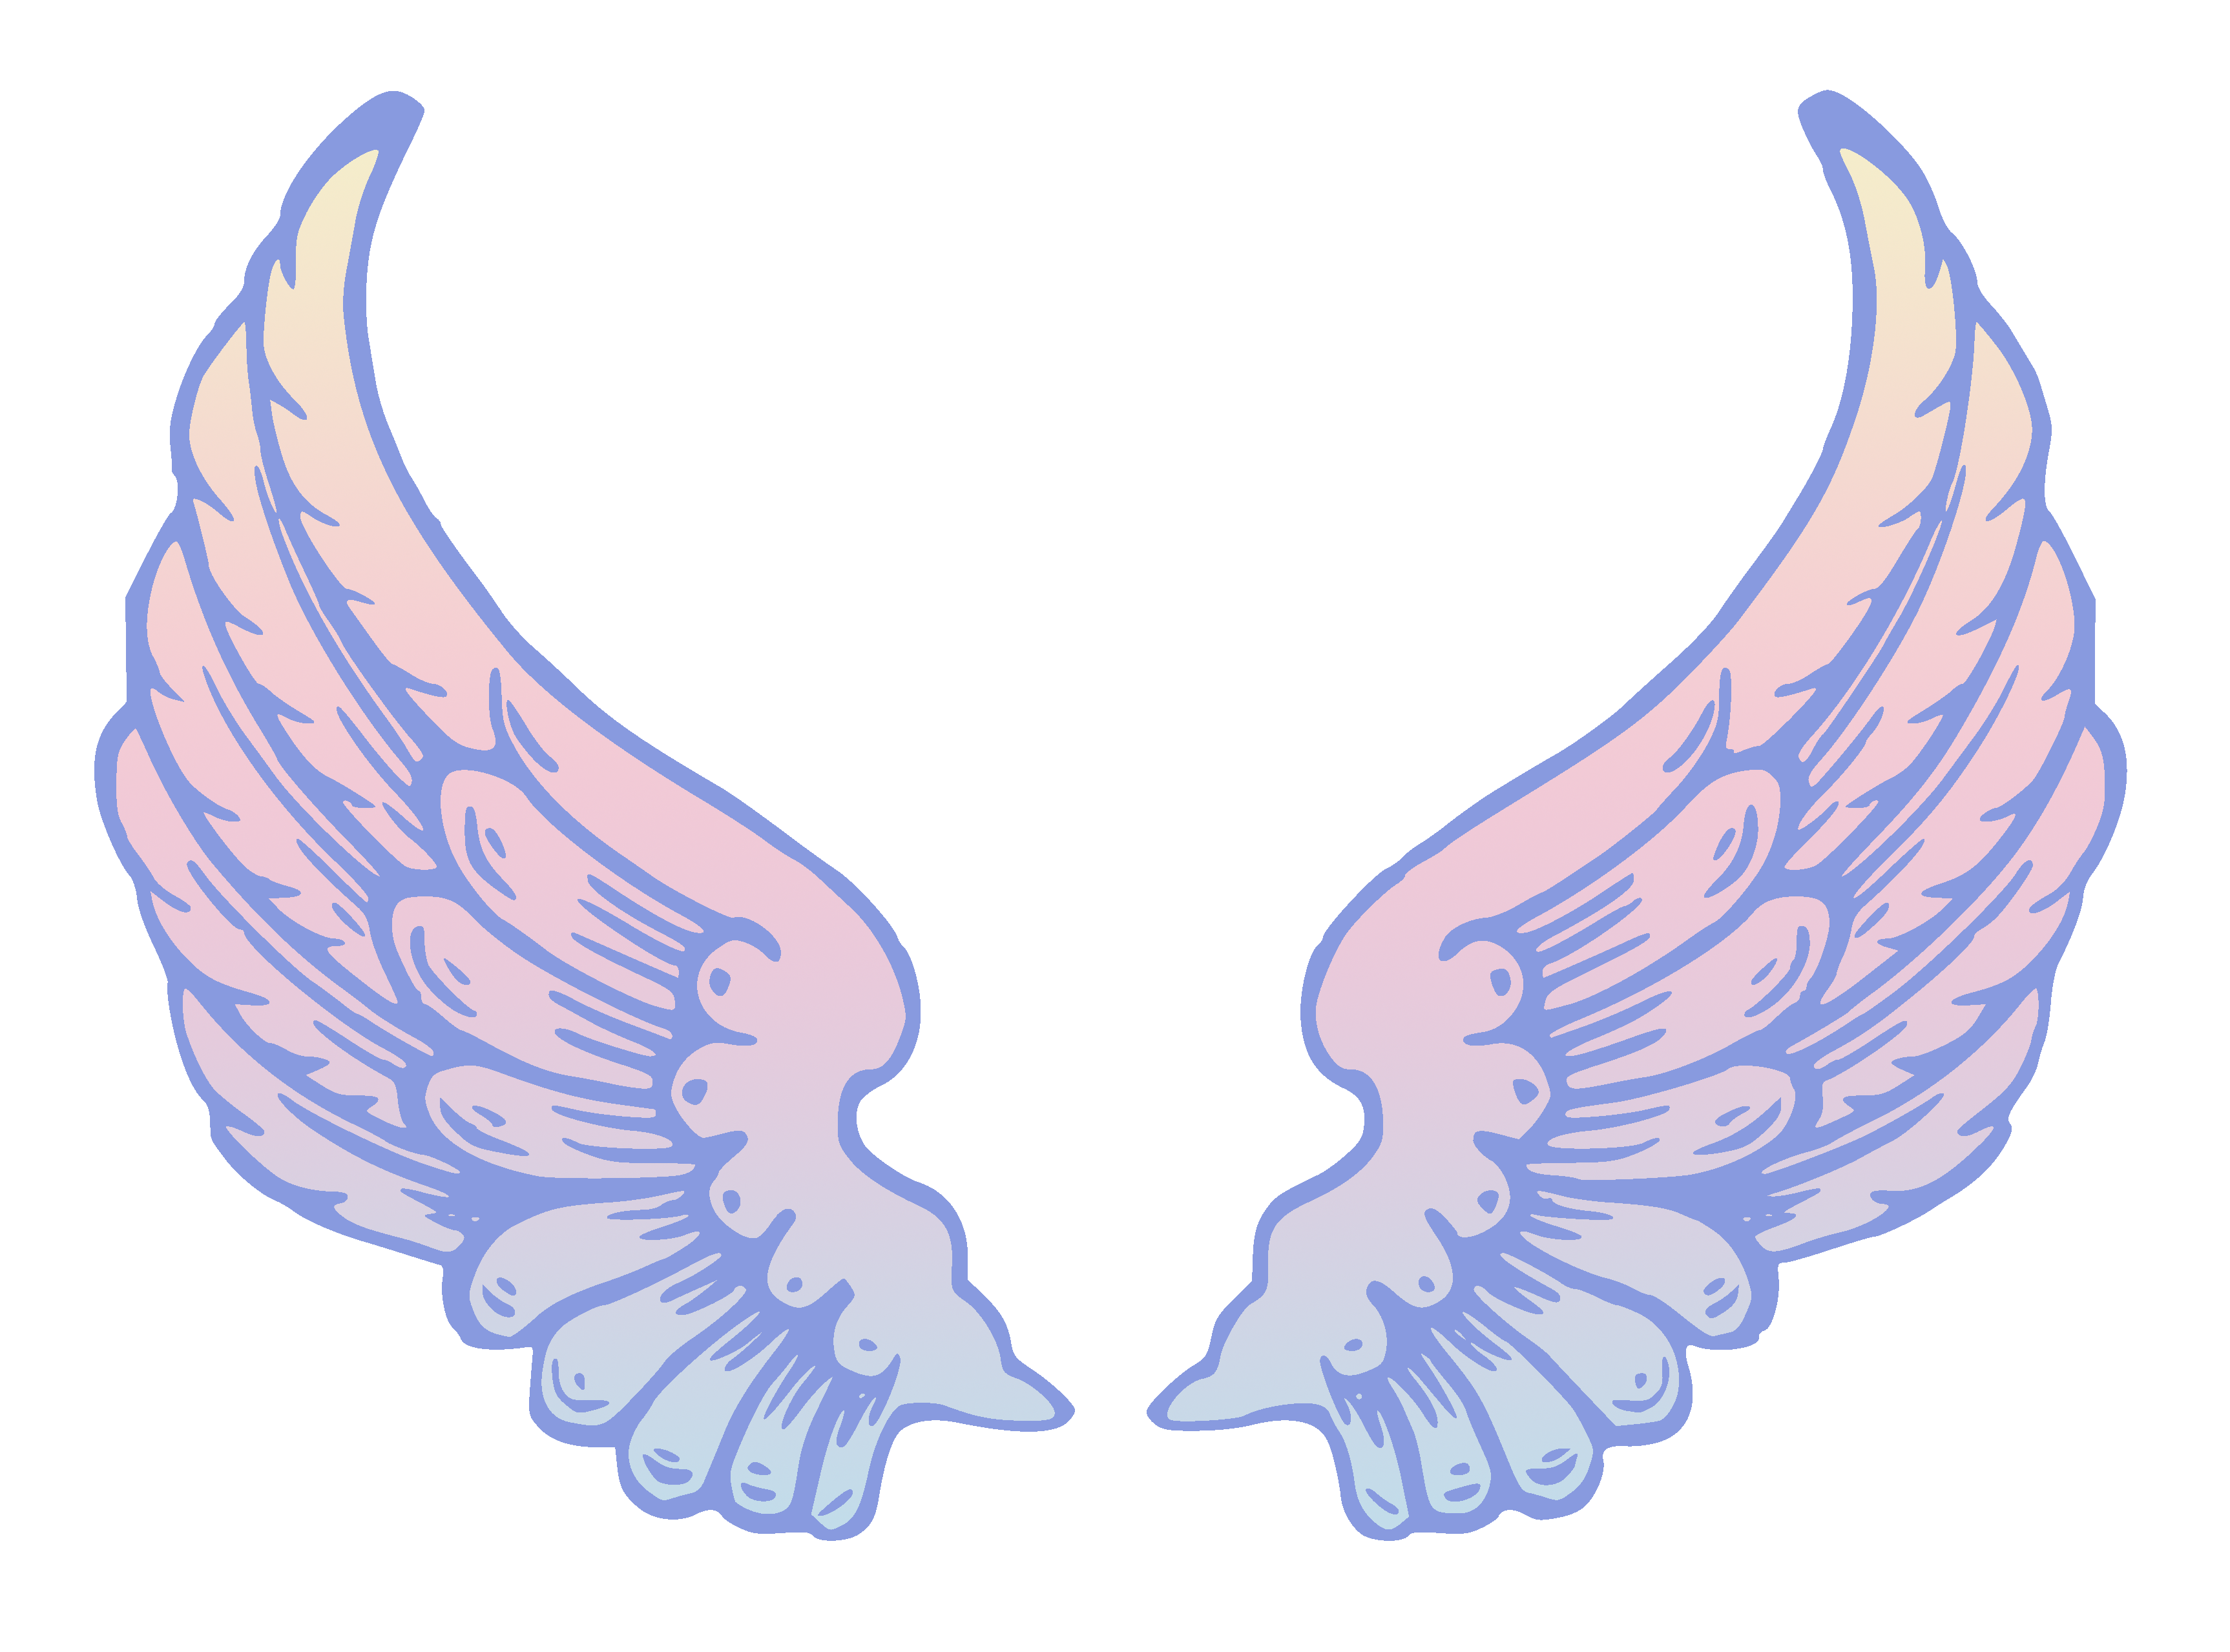 Angel wing pictures clipart clip art royalty free Angel Wings Png Clipart (+) - Free Download | fourjay.org clip art royalty free